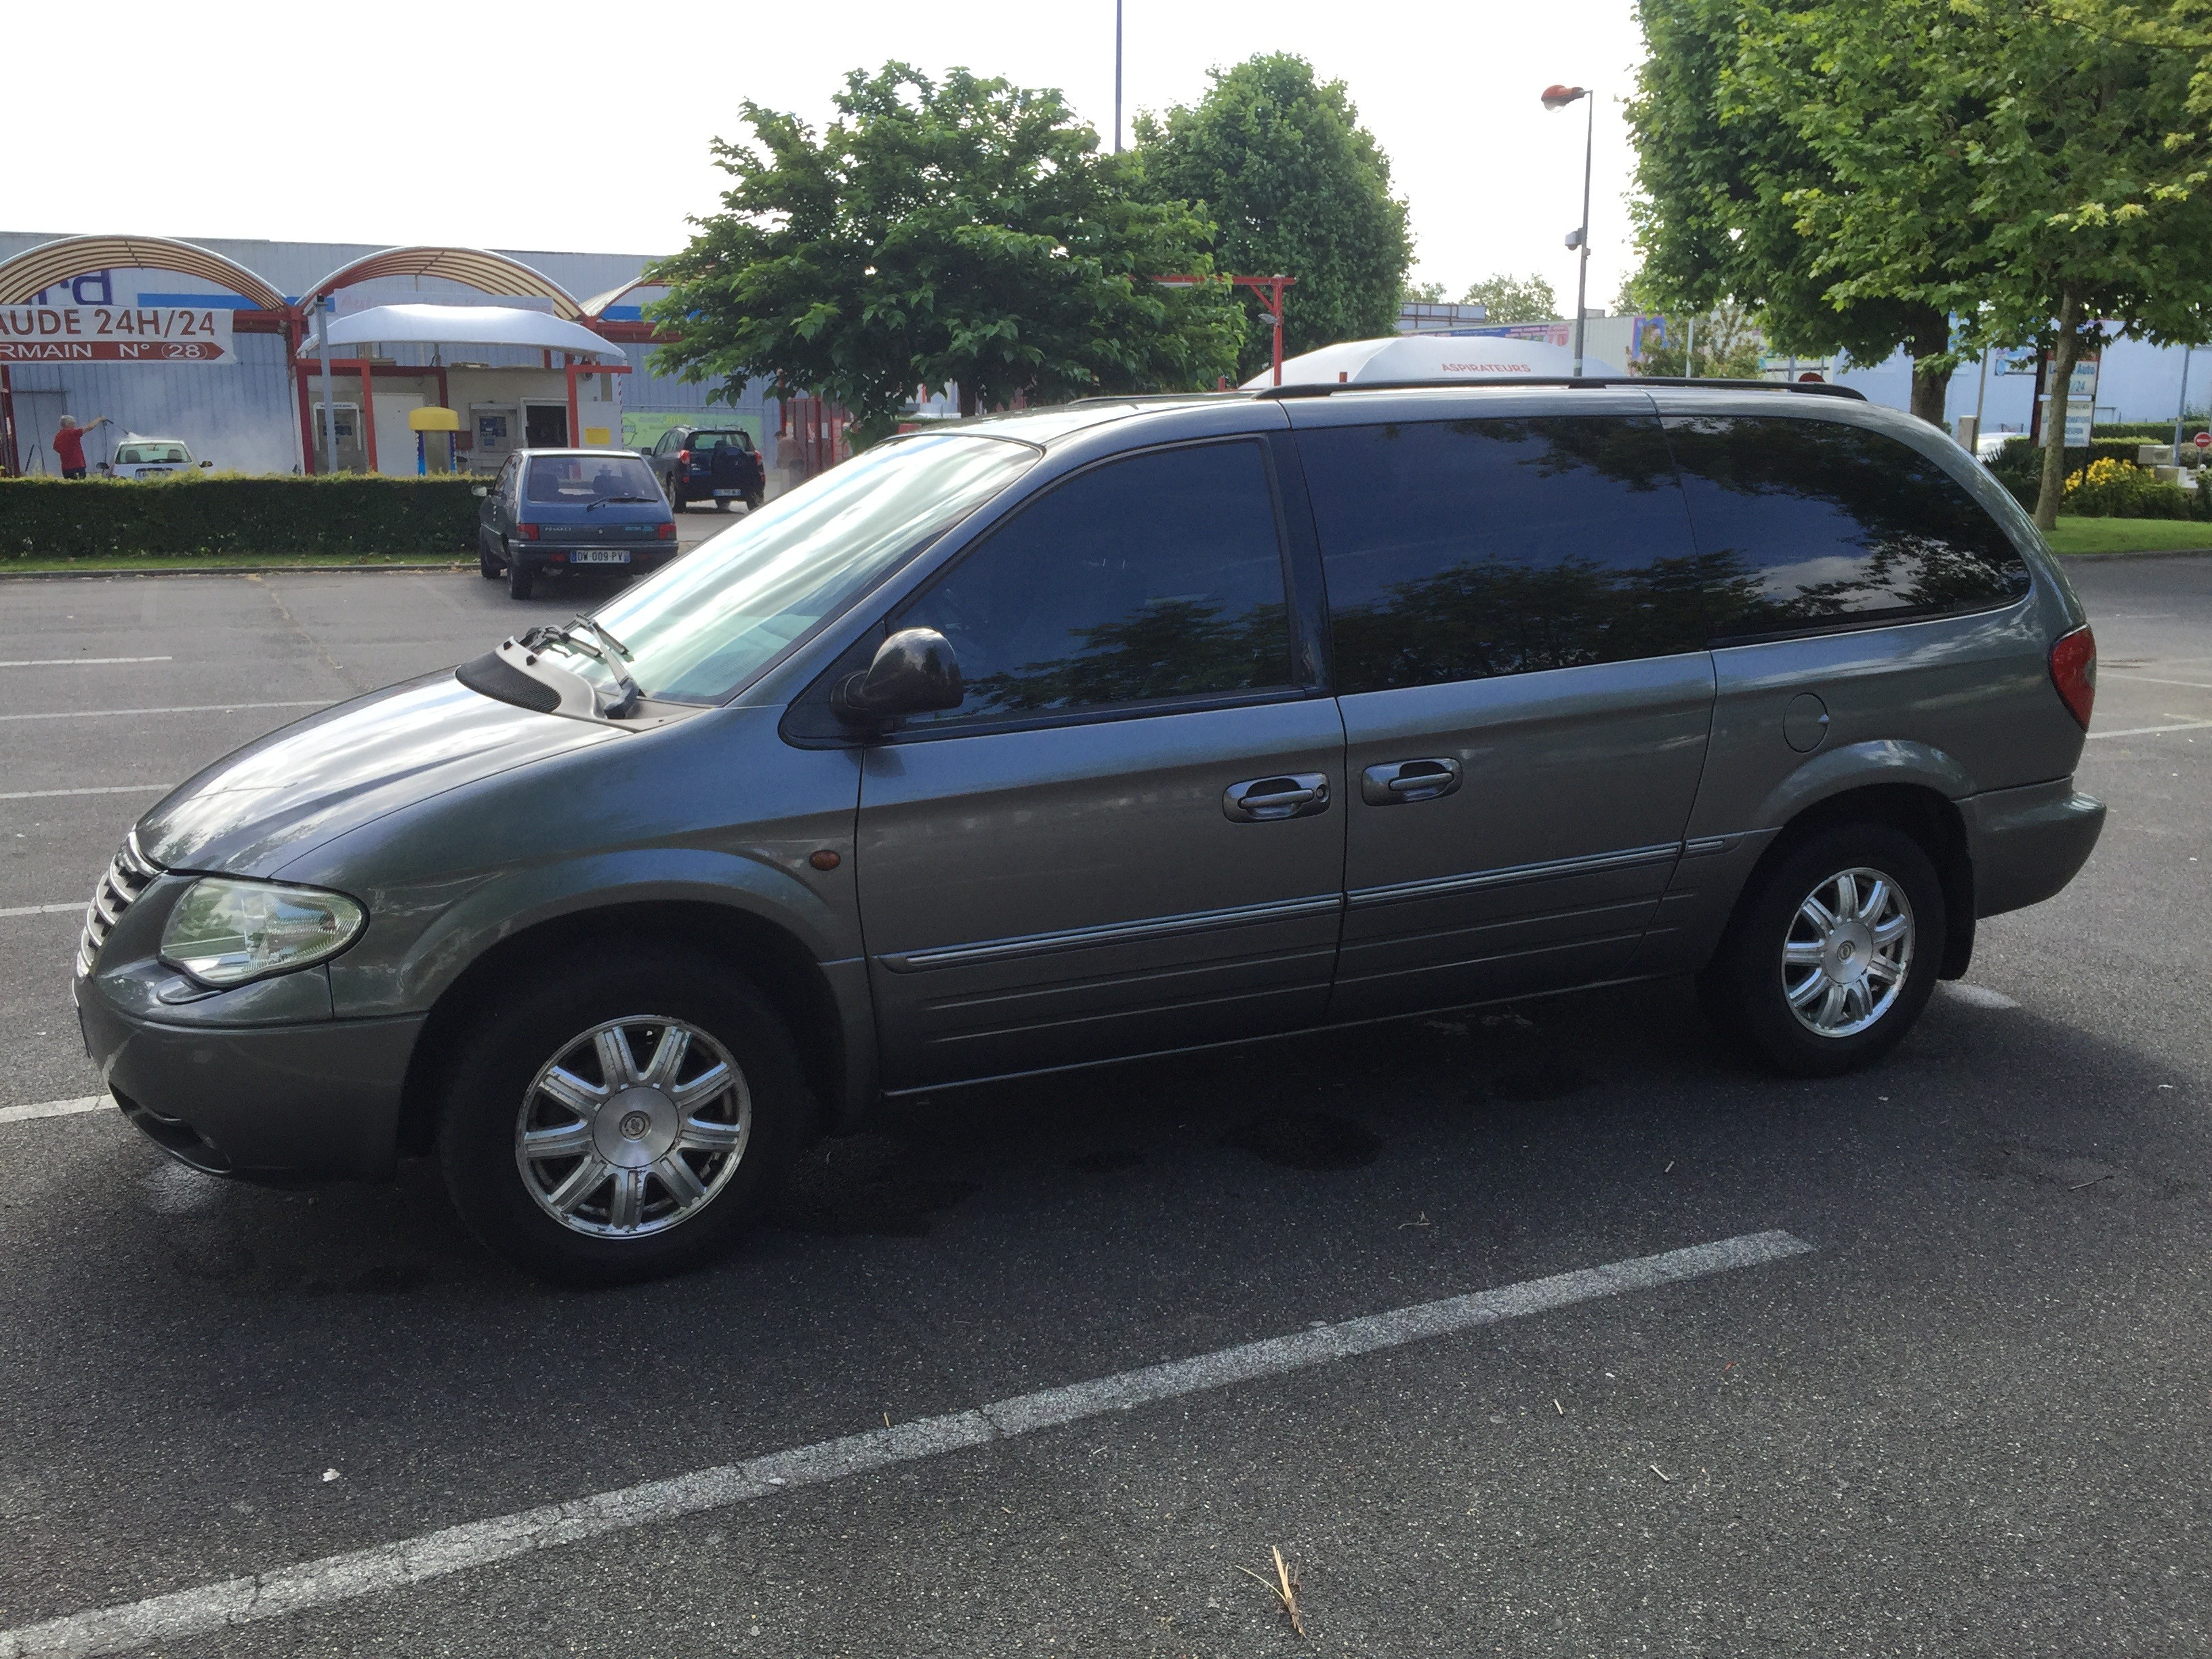 Grand voyager S4 limited BqR3QZ